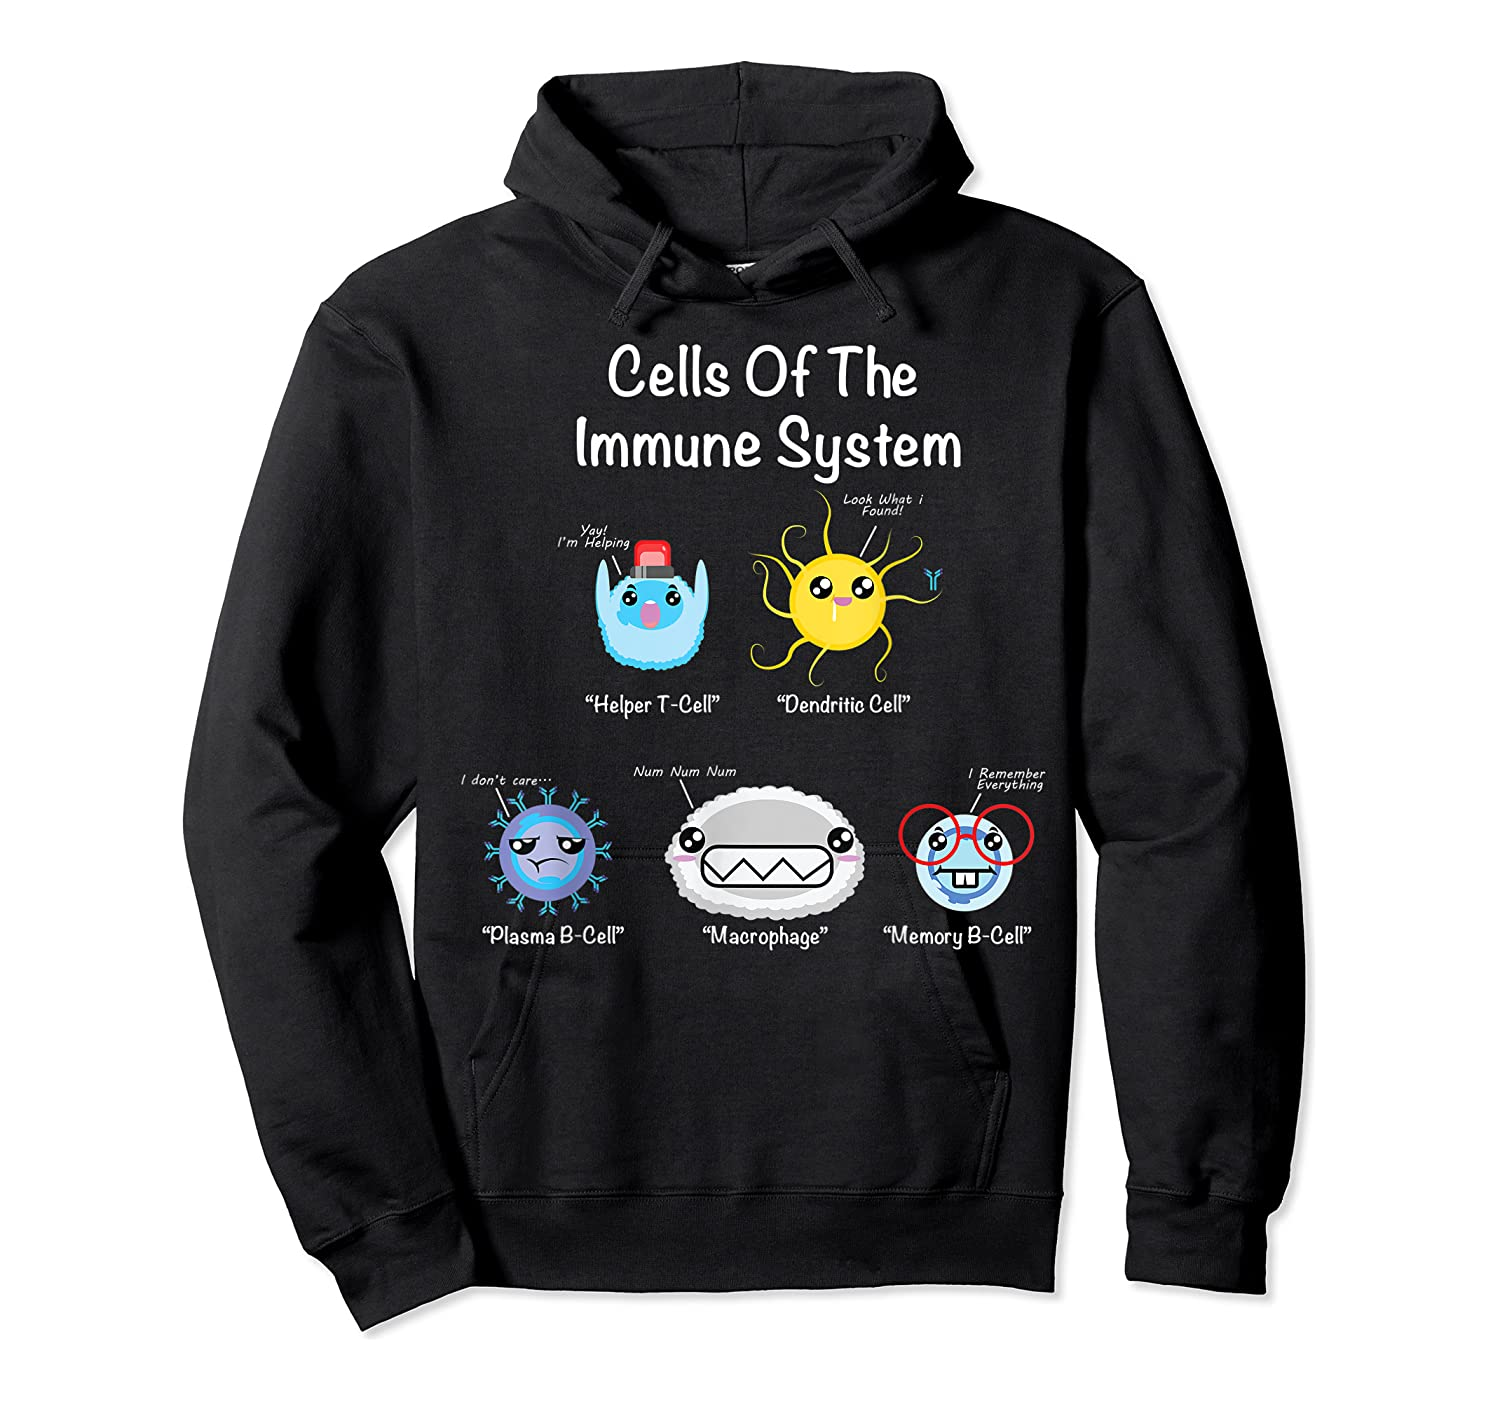 Immune System Cells Biology Cell Science Humor Immunologist Shirts Unisex Pullover Hoodie